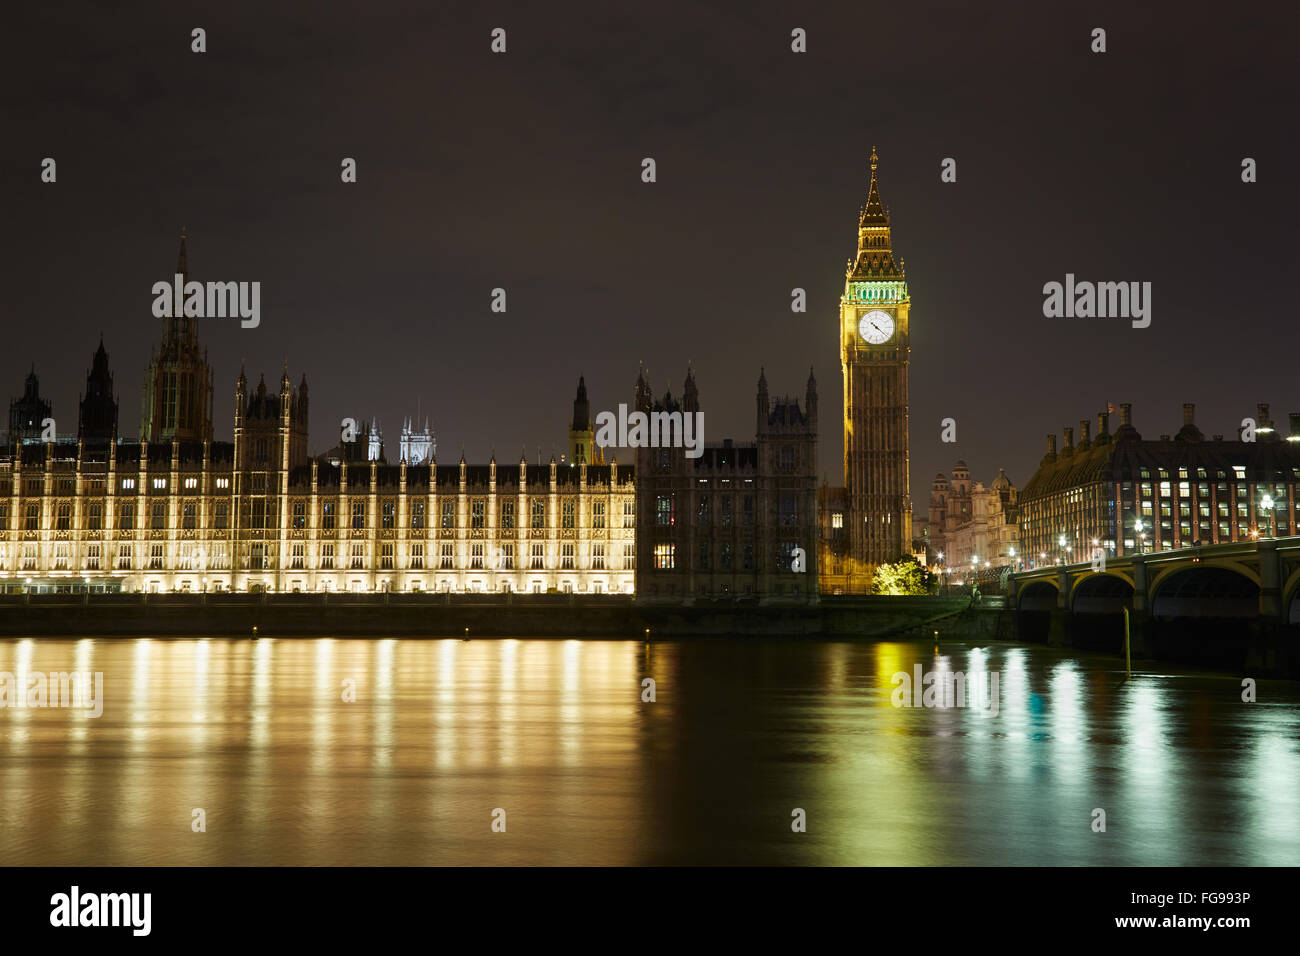 Big Ben and Palace of Westminster at night in London, natural colors - Stock Image